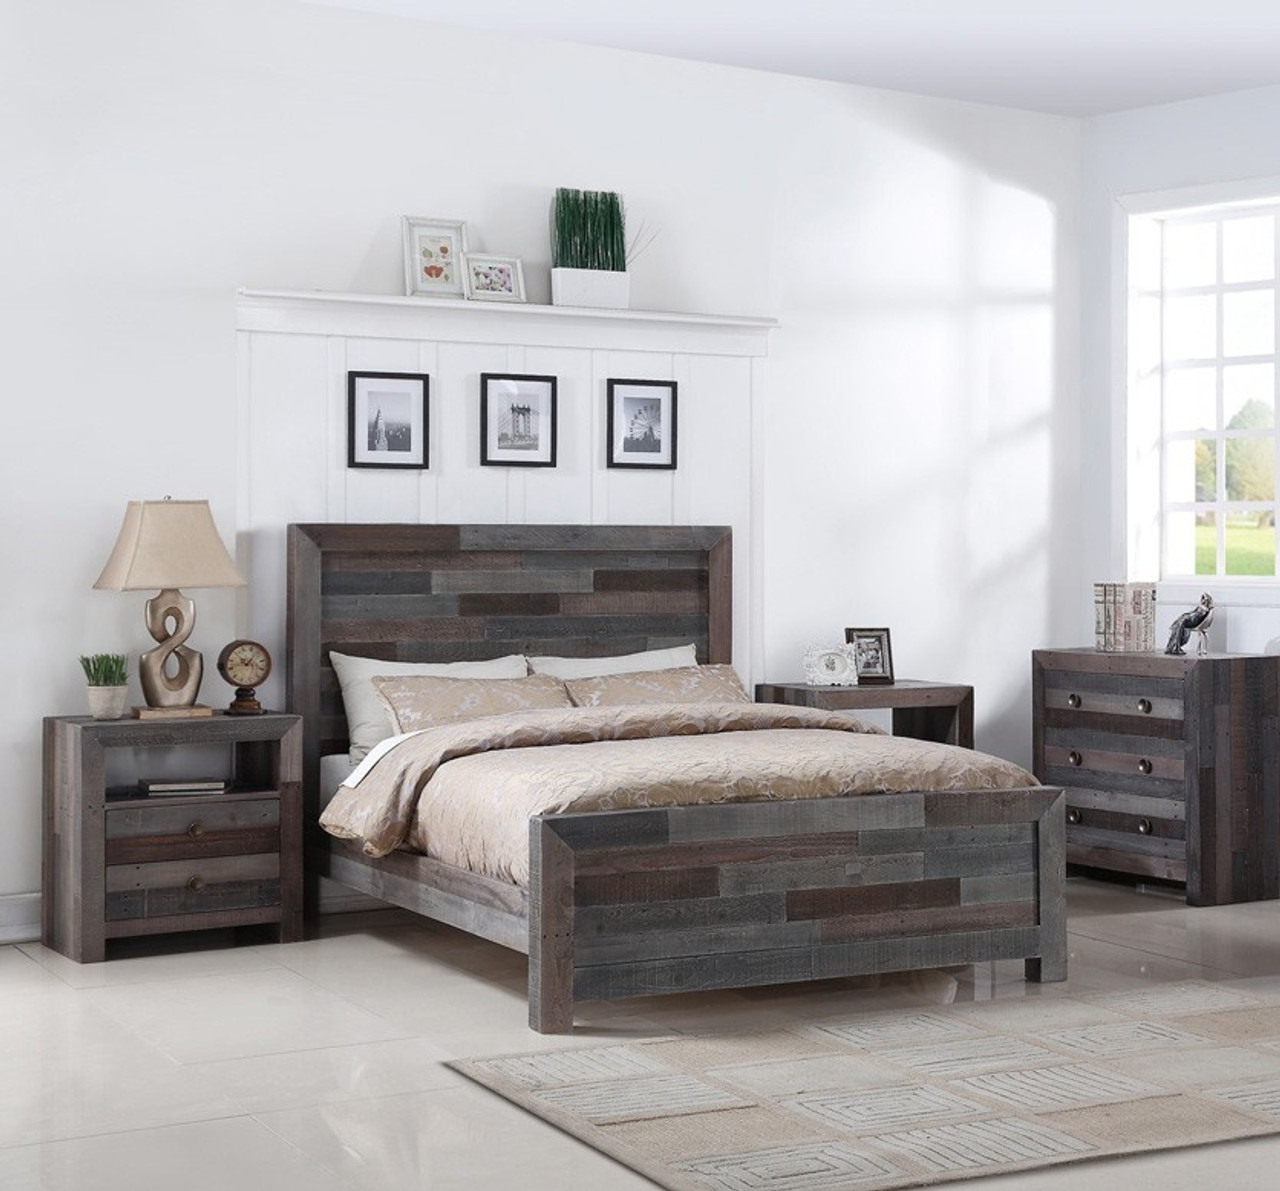 angora reclaimed wood king size platform bed storm zin home. Black Bedroom Furniture Sets. Home Design Ideas